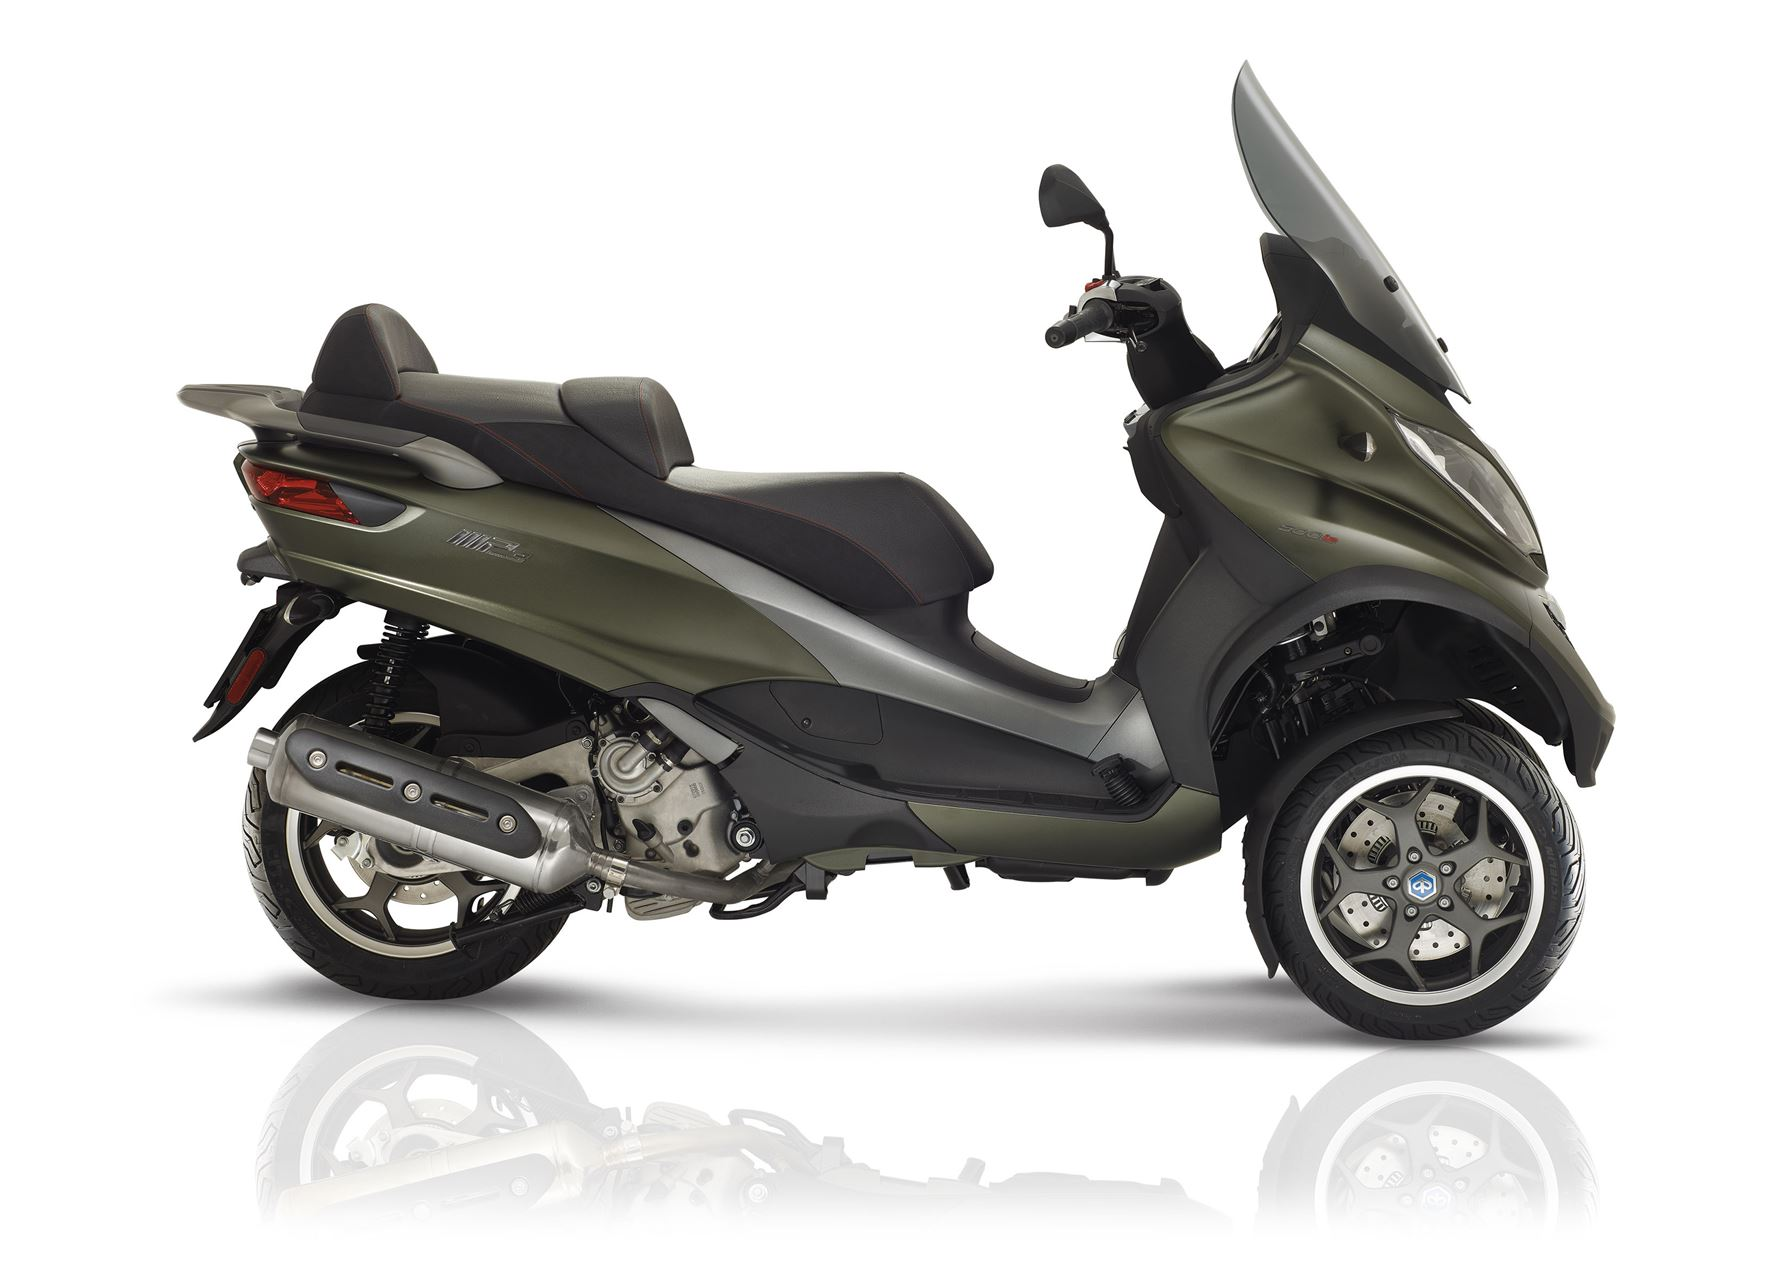 piaggio mp3 500 lt sport scooter acima 125 cc andar de moto. Black Bedroom Furniture Sets. Home Design Ideas